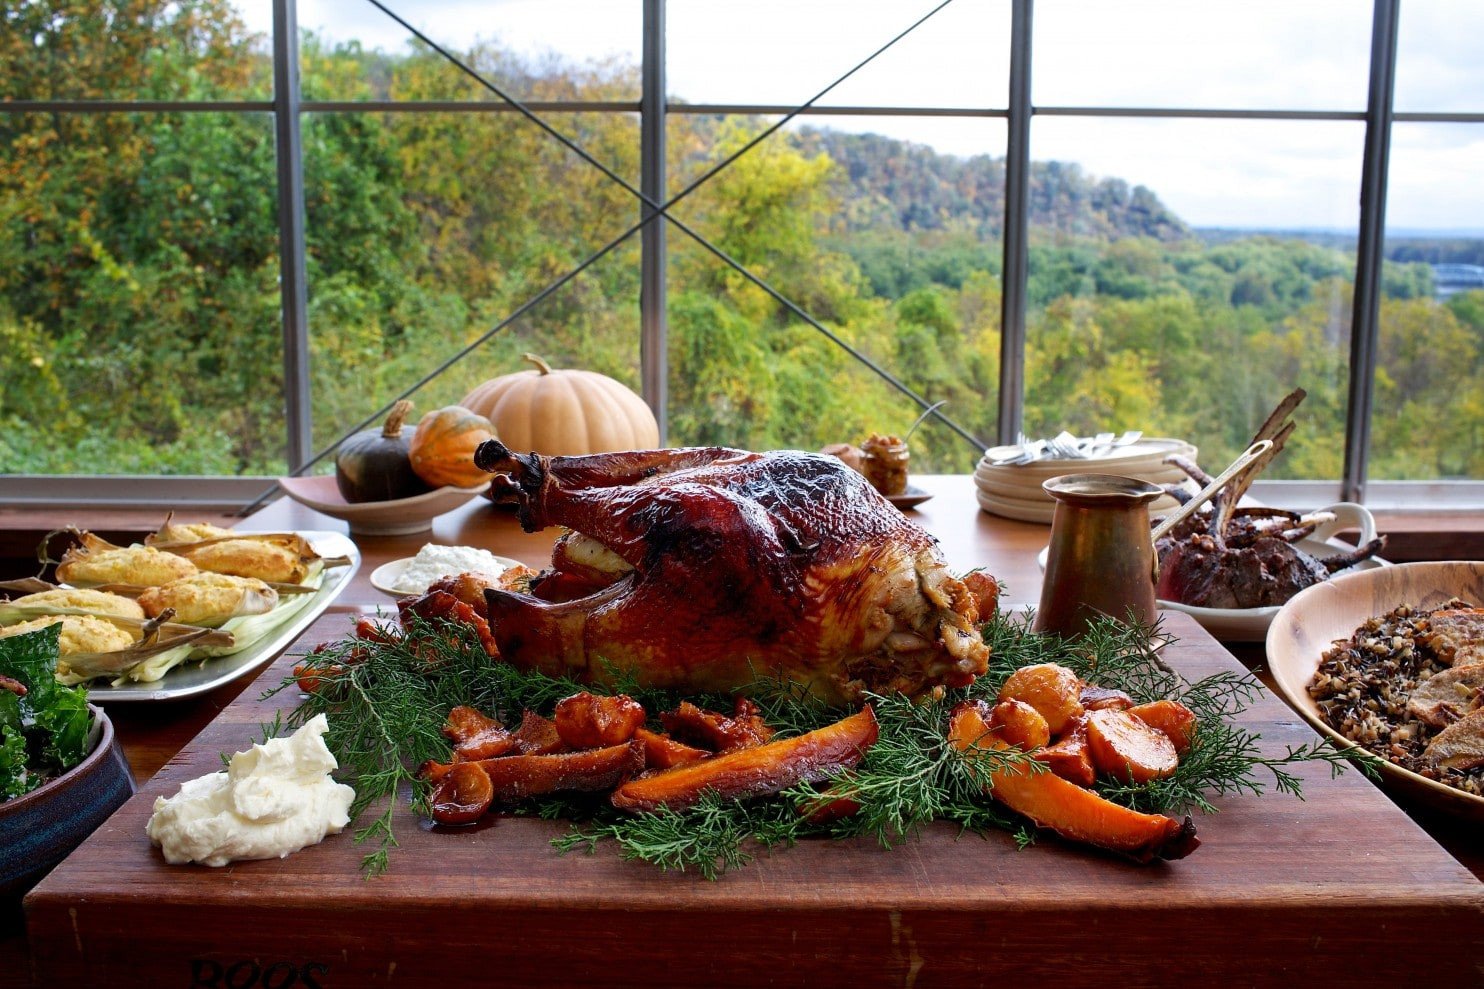 Turkey Prices 2019 Thanksgiving  It's time to order local turkeys for Thanksgiving The